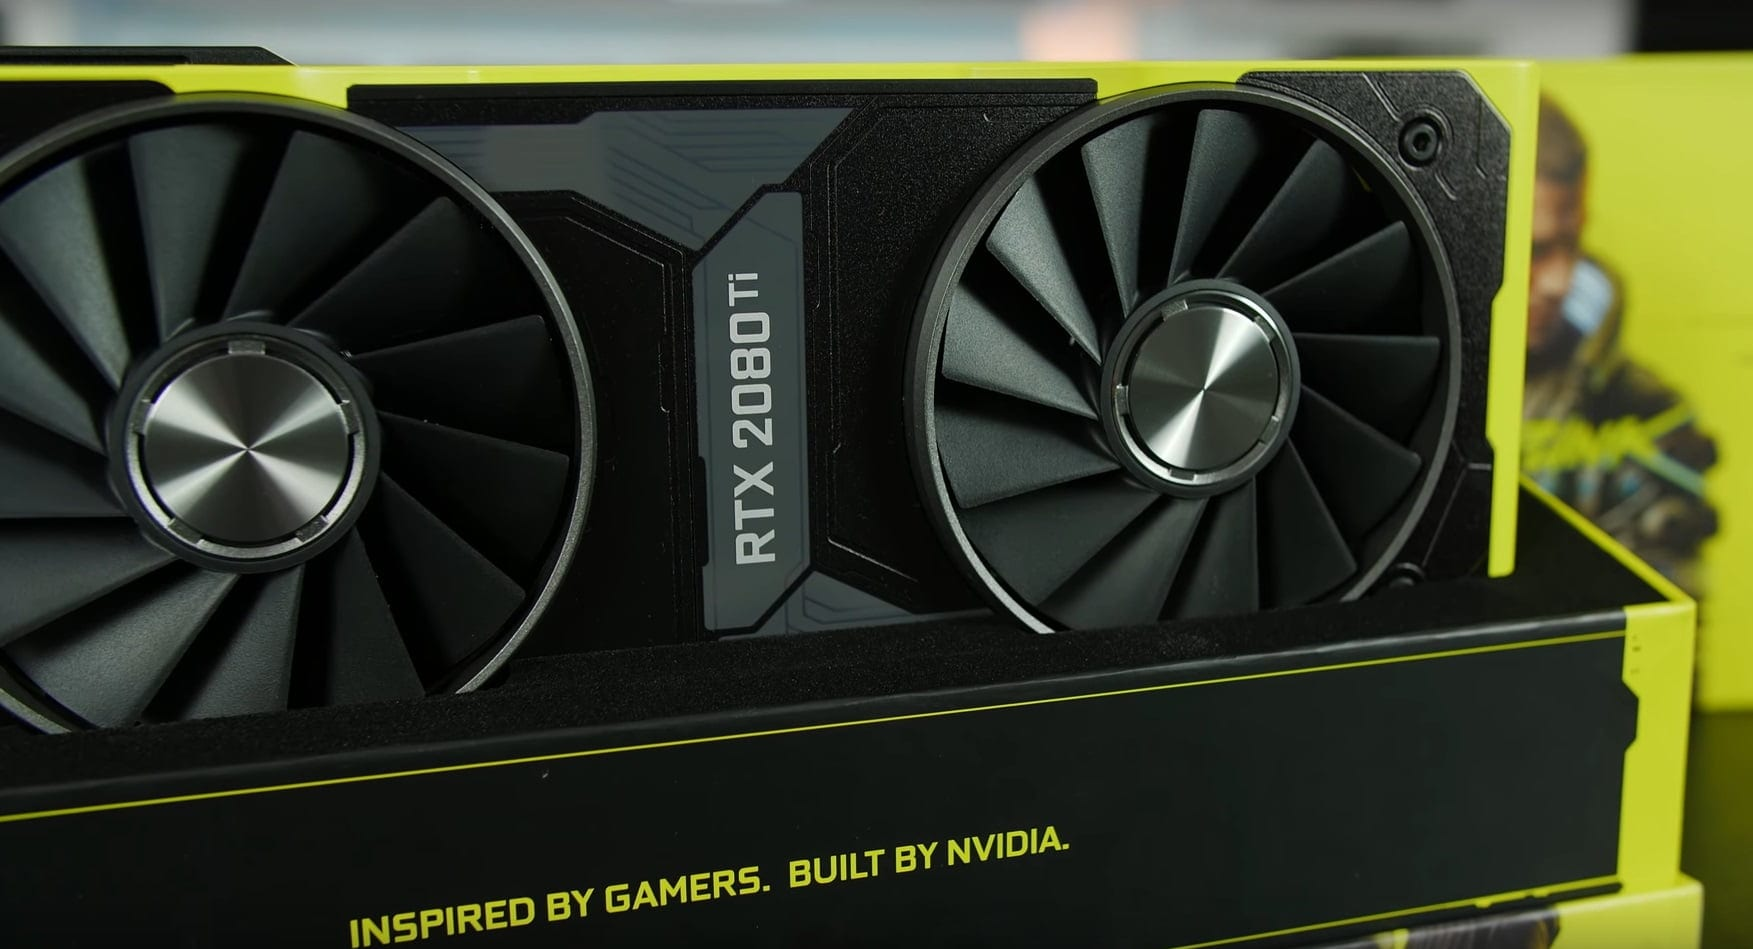 der8auer published a video with disassembly and overclocking of an exclusive video card GeForce RTX 2080 Ti Cyberpunk 2077 Edition